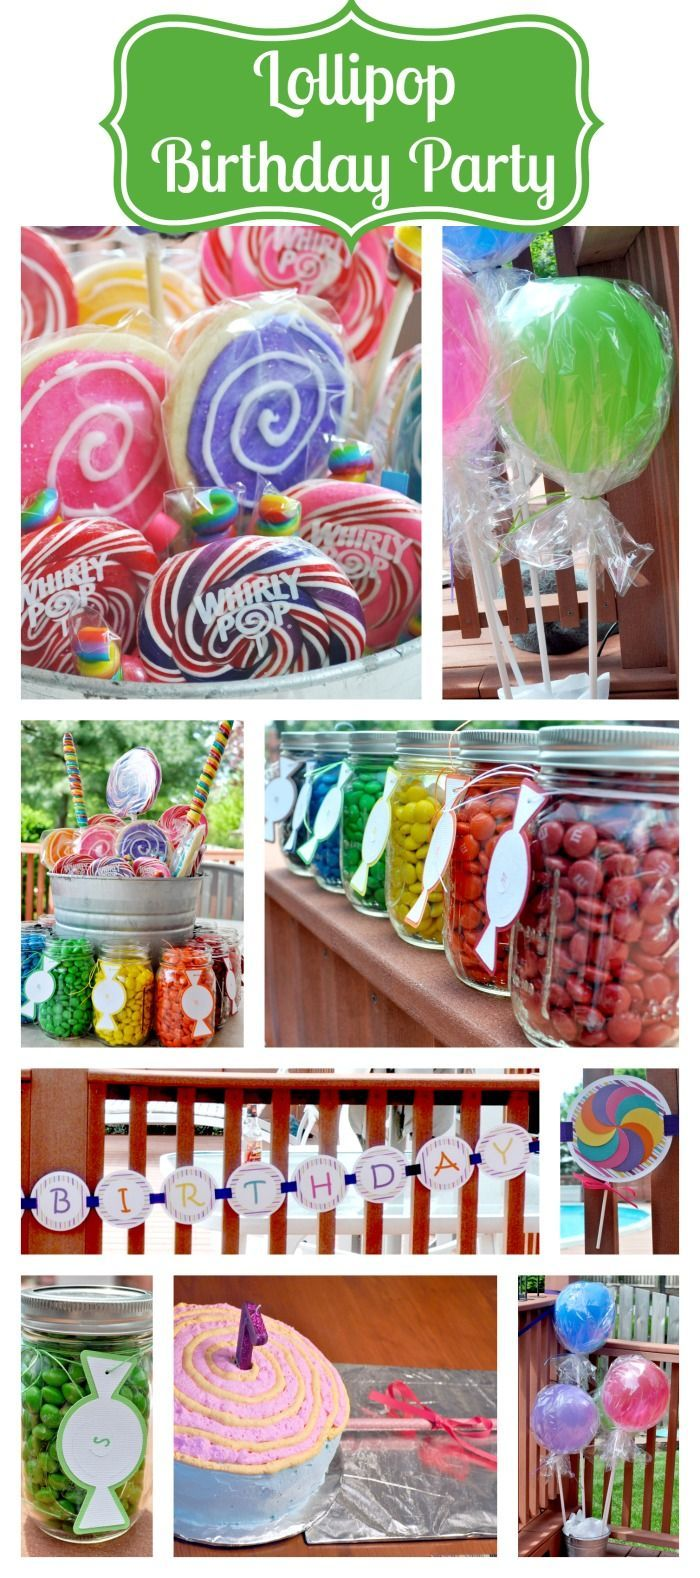 Lots of fun details for this Lollipop Birthday Party {The Love Nerds} #birthdayparty #lollipopparty